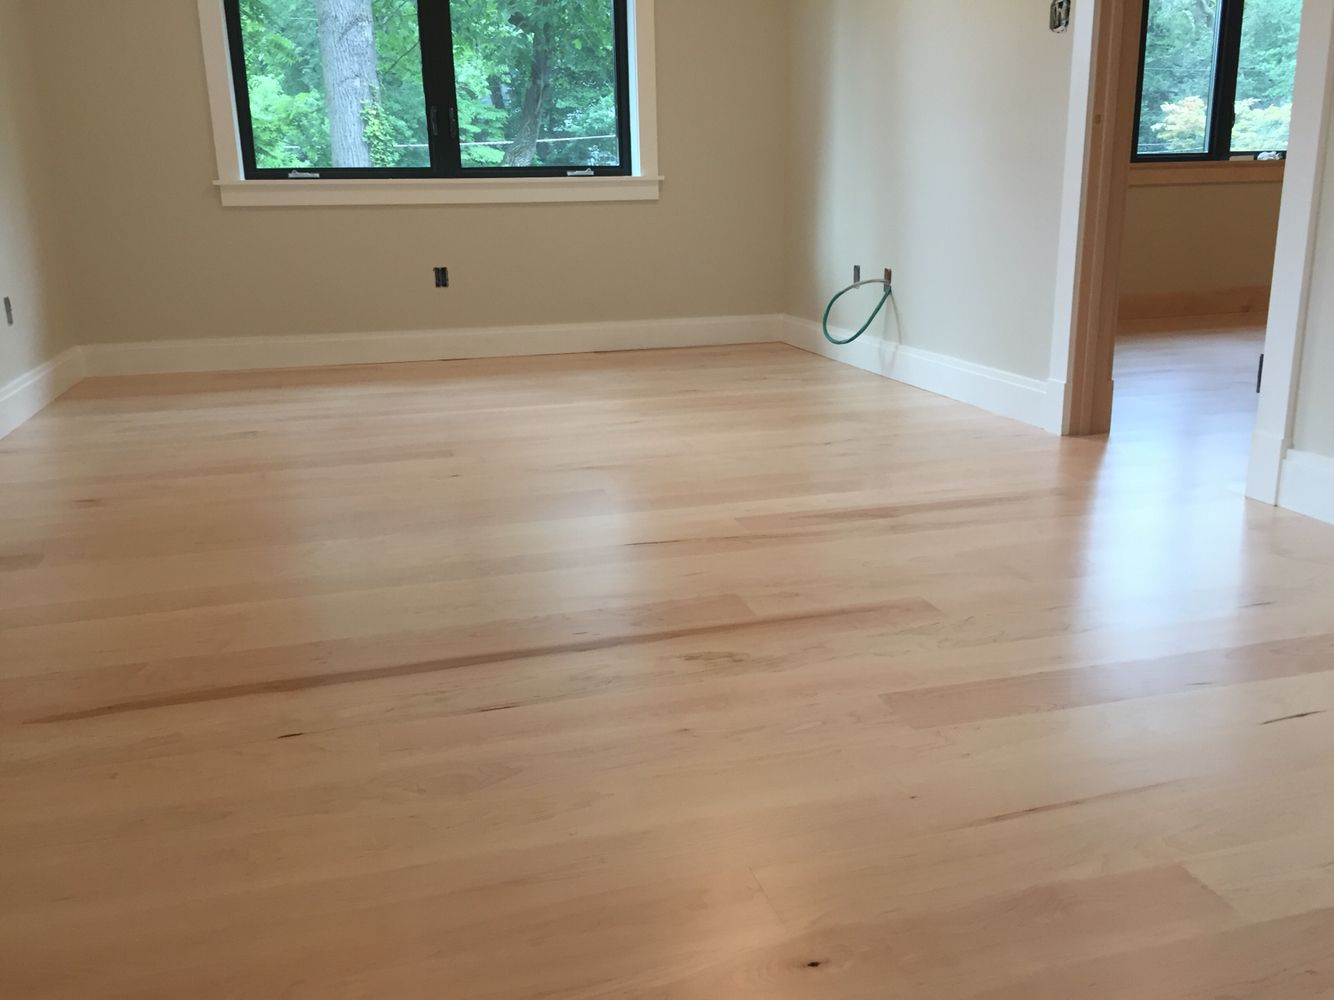 Locally milled 5 maple flooring finished with Bona